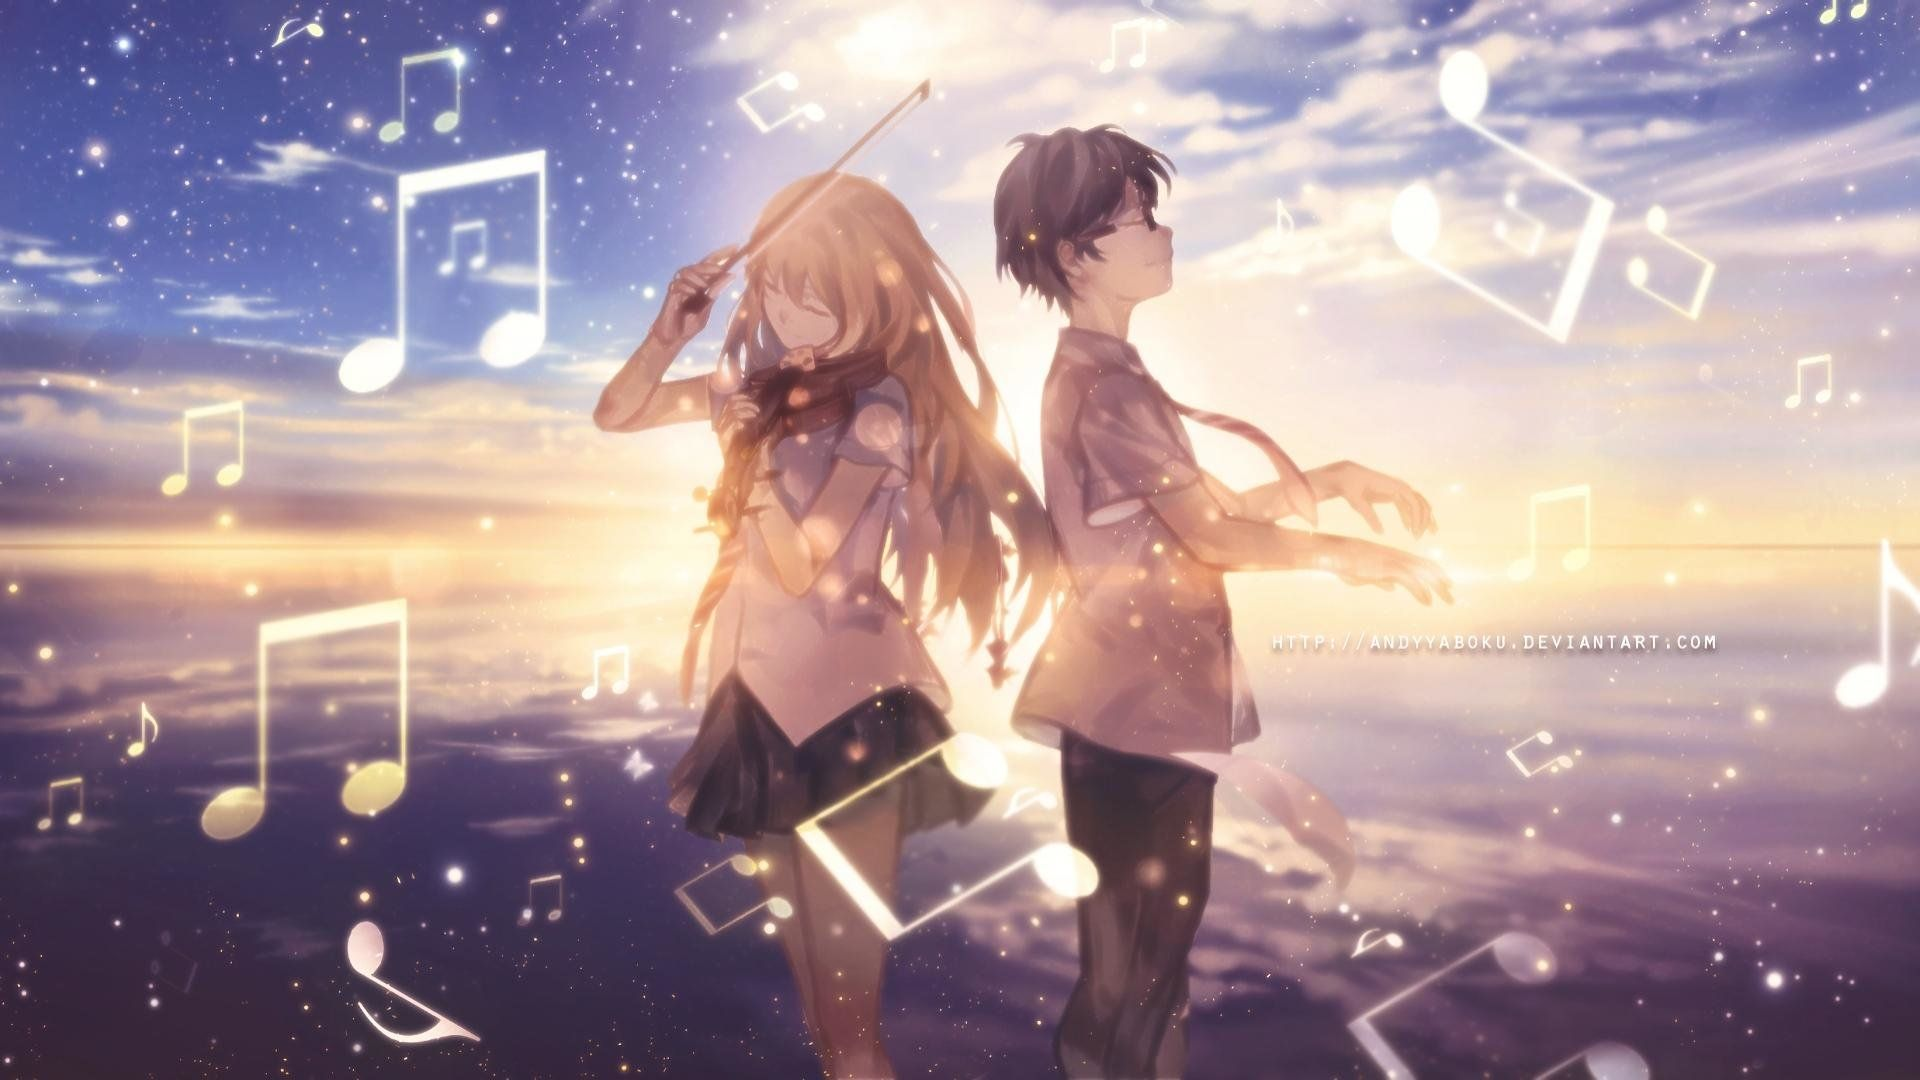 Your Lie In April Computer Wallpapers Top Free Your Lie In April